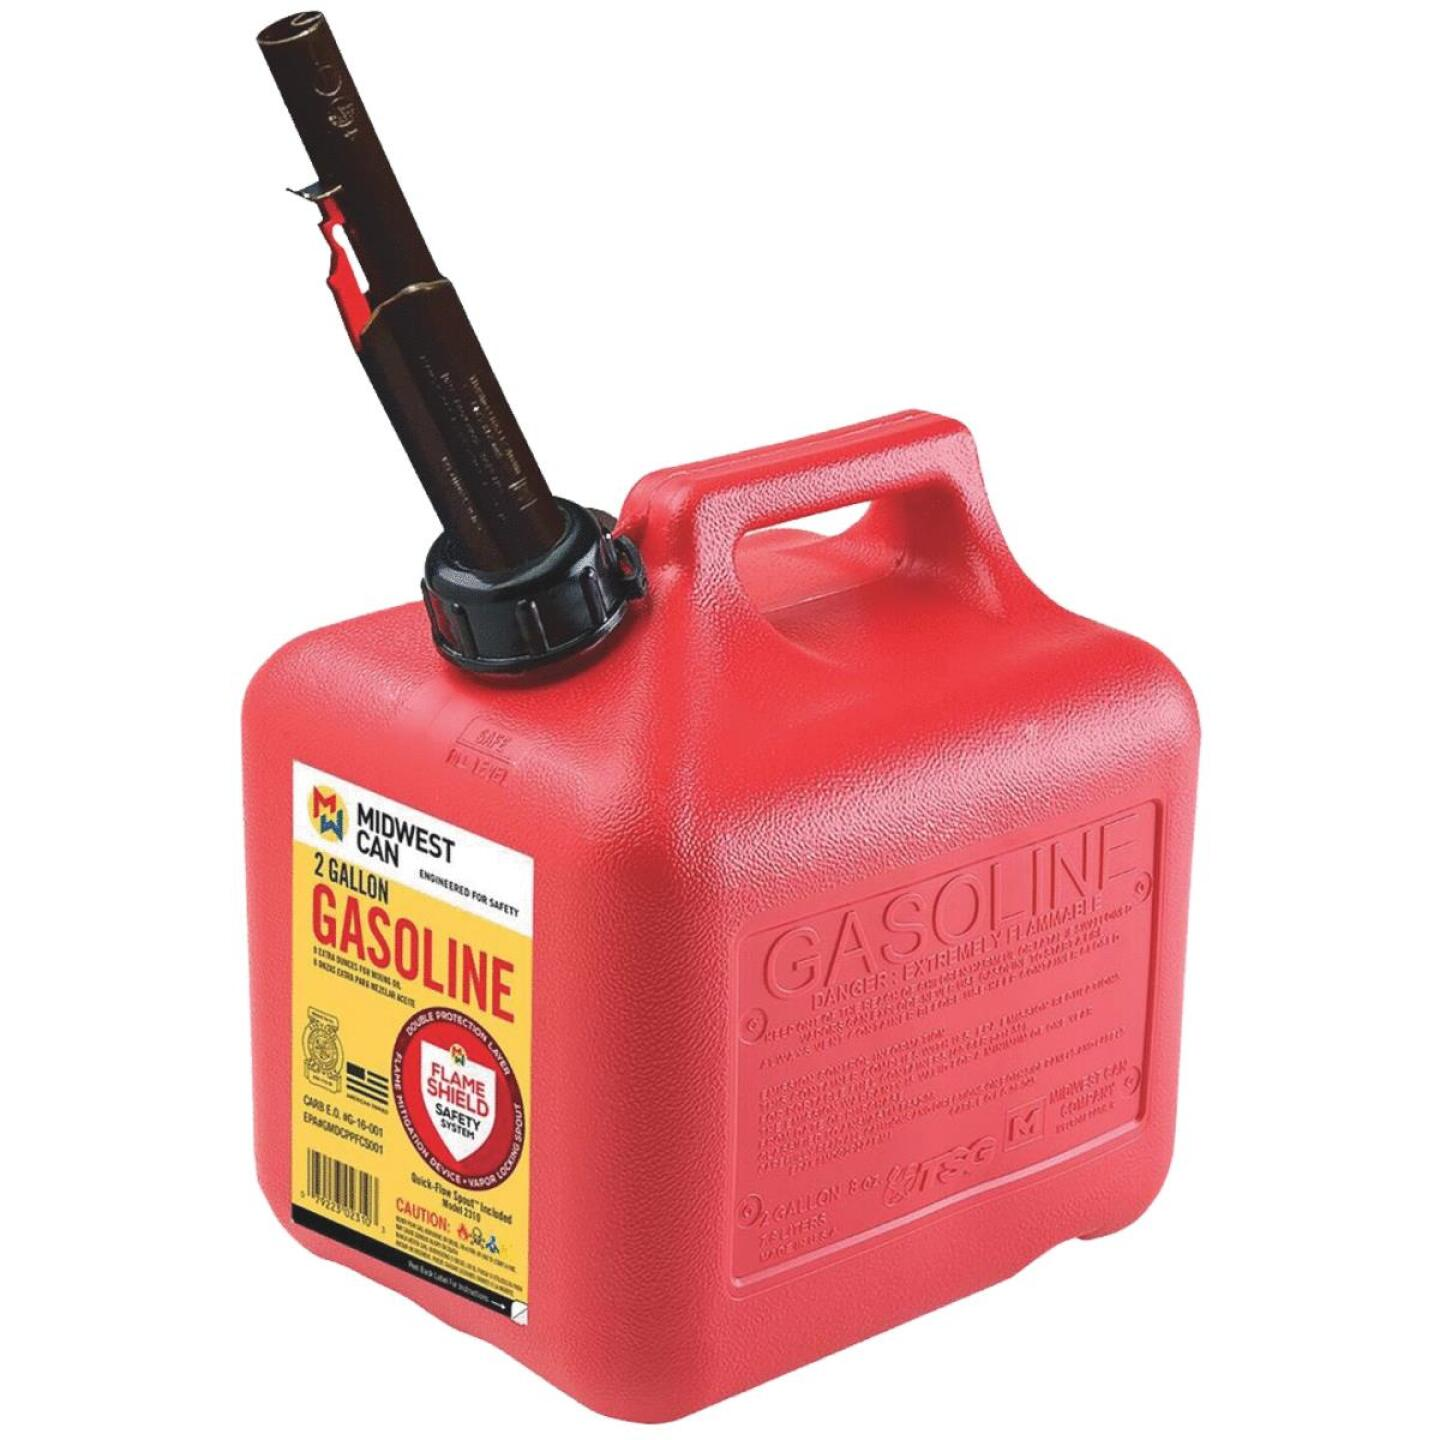 Midwest Can 2 Gal. Plastic Auto Shut-Off Gasoline Fuel Can, Red Image 1